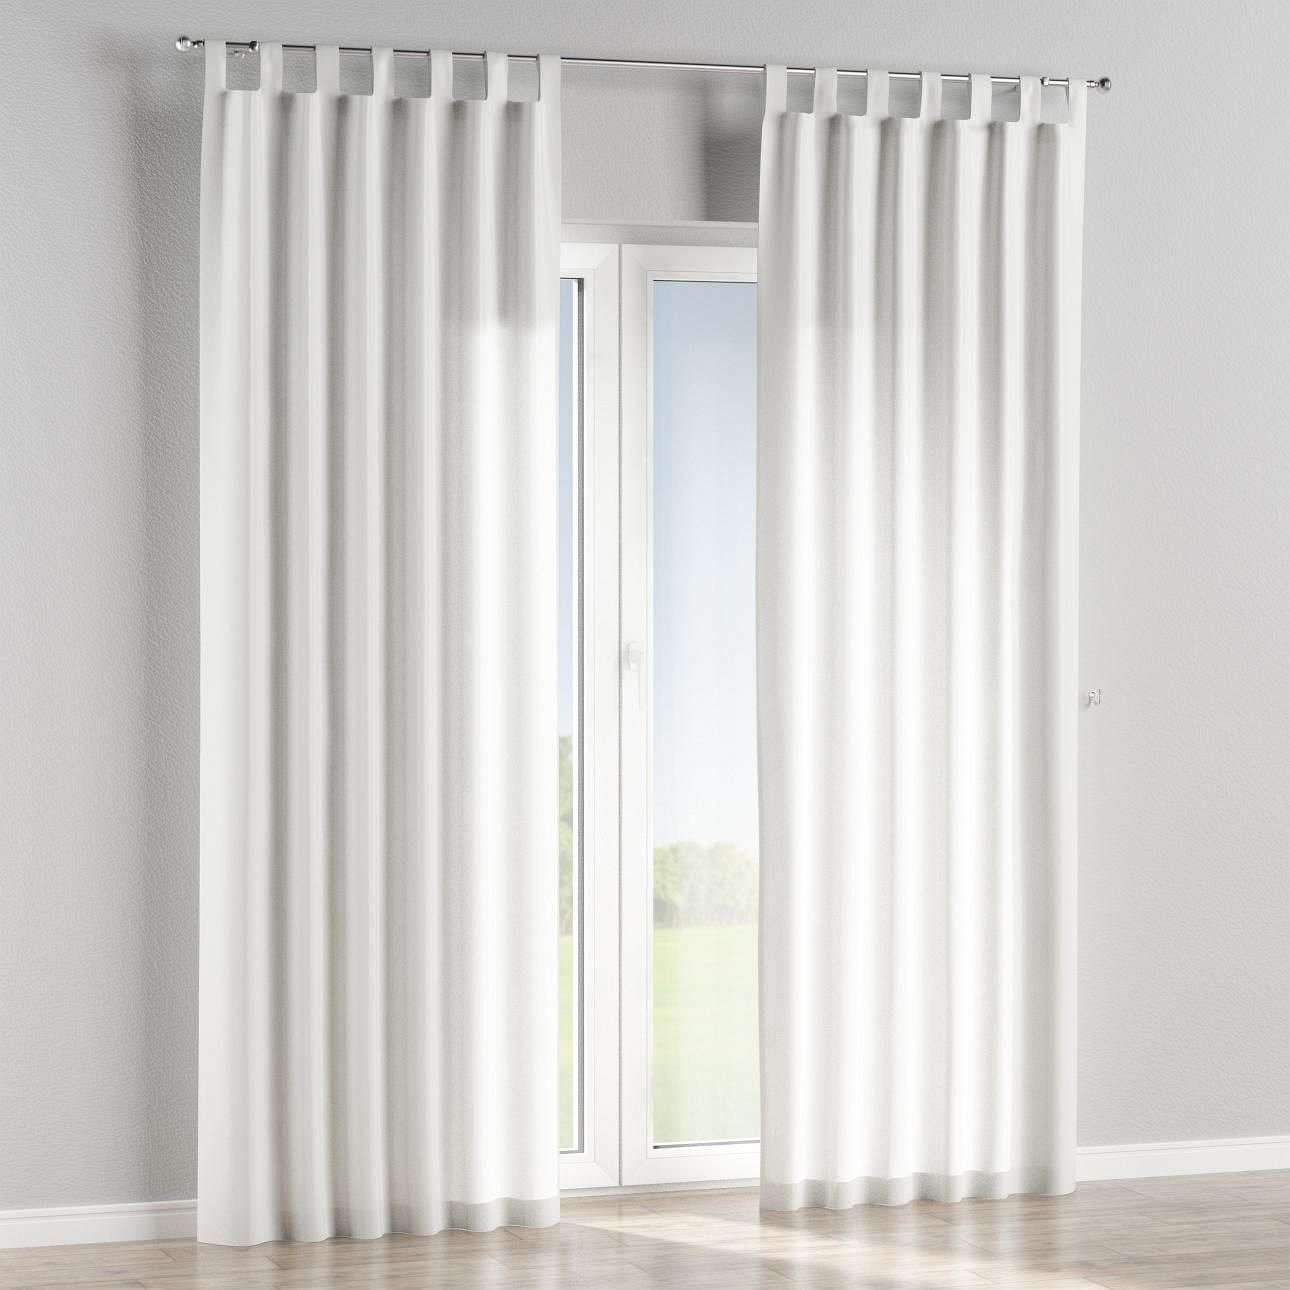 Tab top curtains in collection Milano, fabric: 150-31